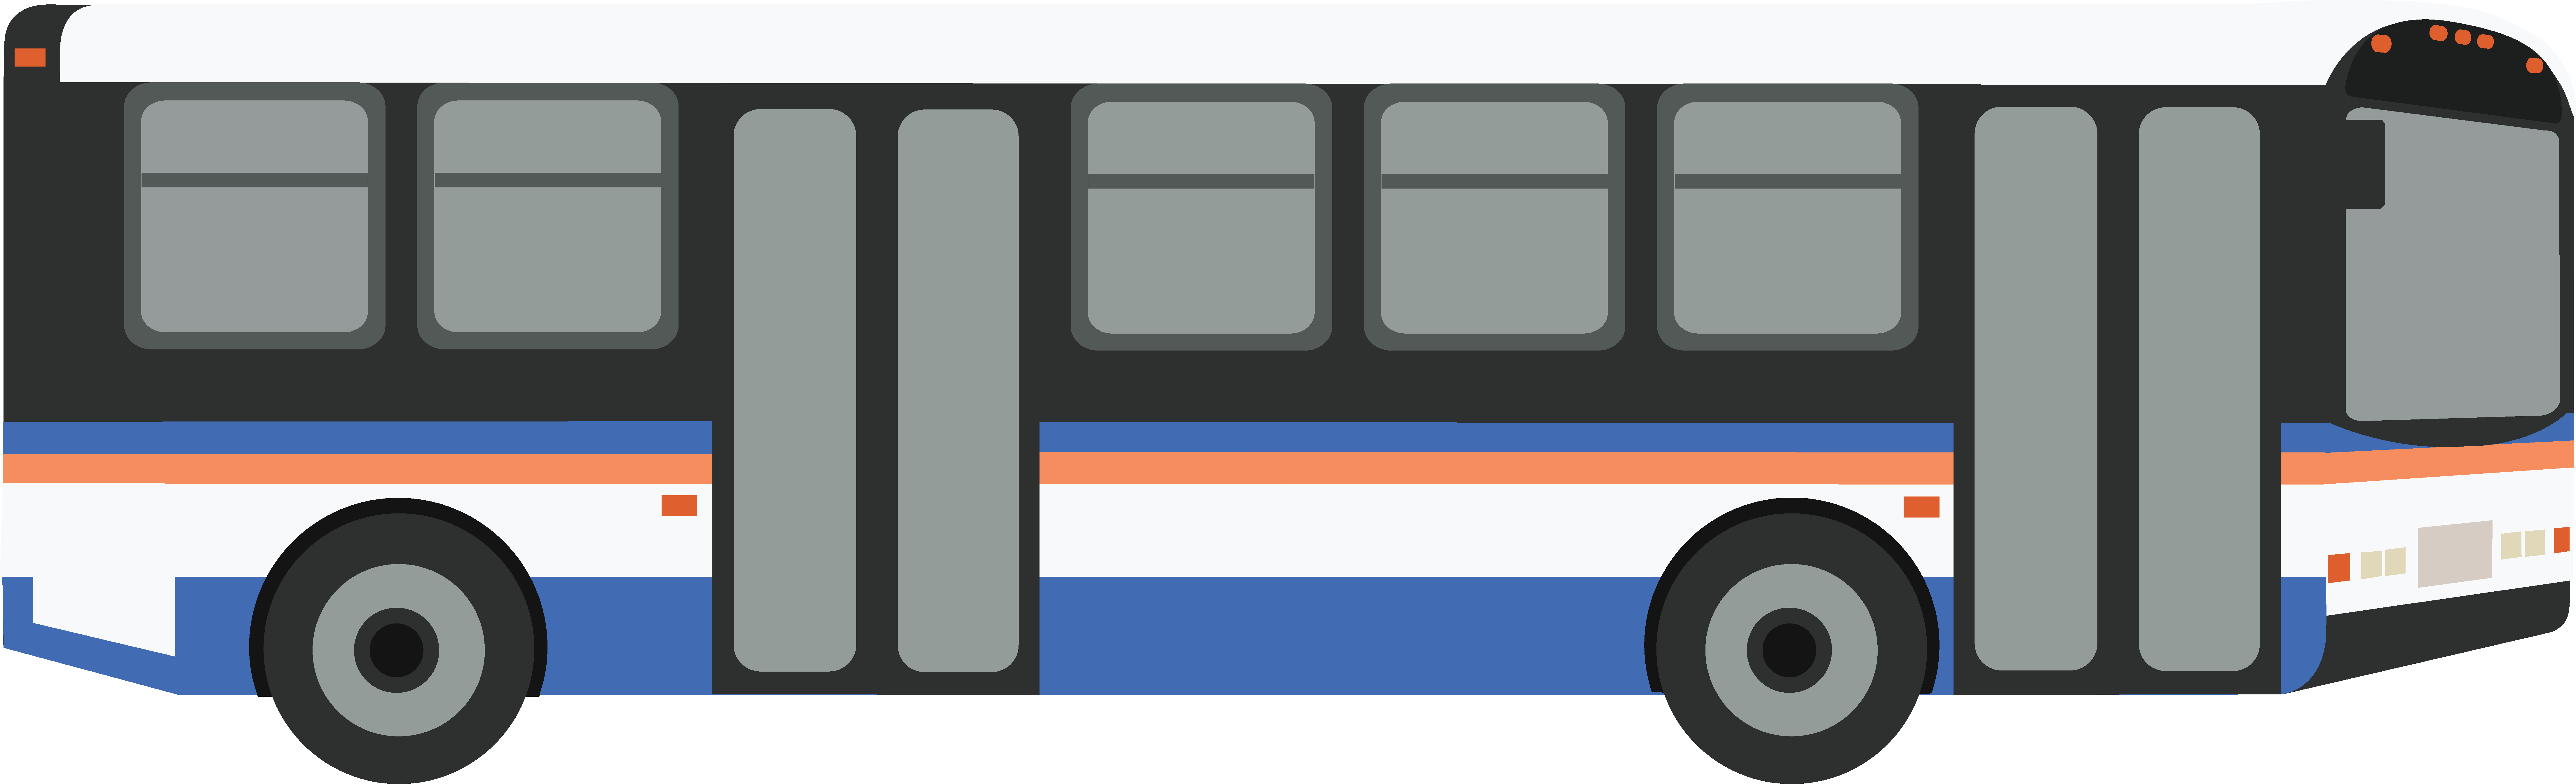 City - City Bus Side View PNG